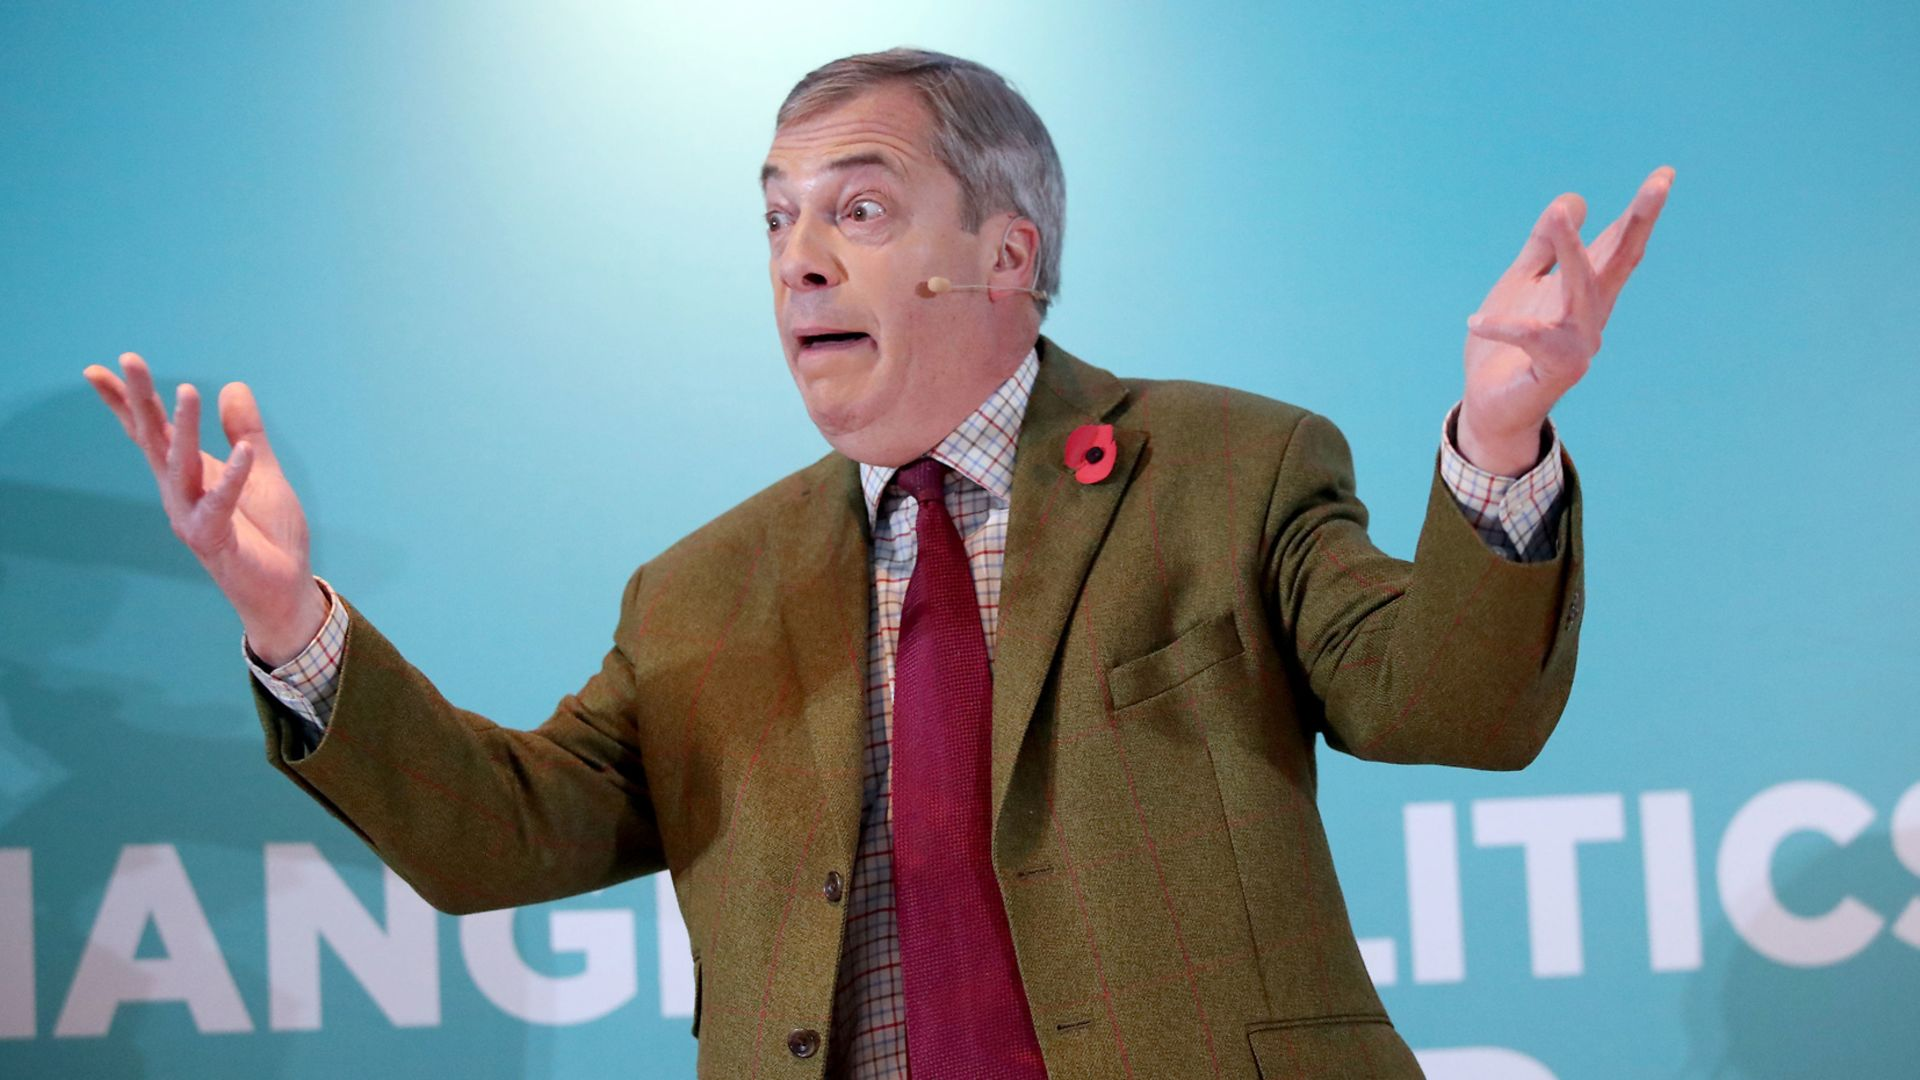 Nigel Farage addresses supporters at the Washington Central Hotel in Workington. - Credit: PA